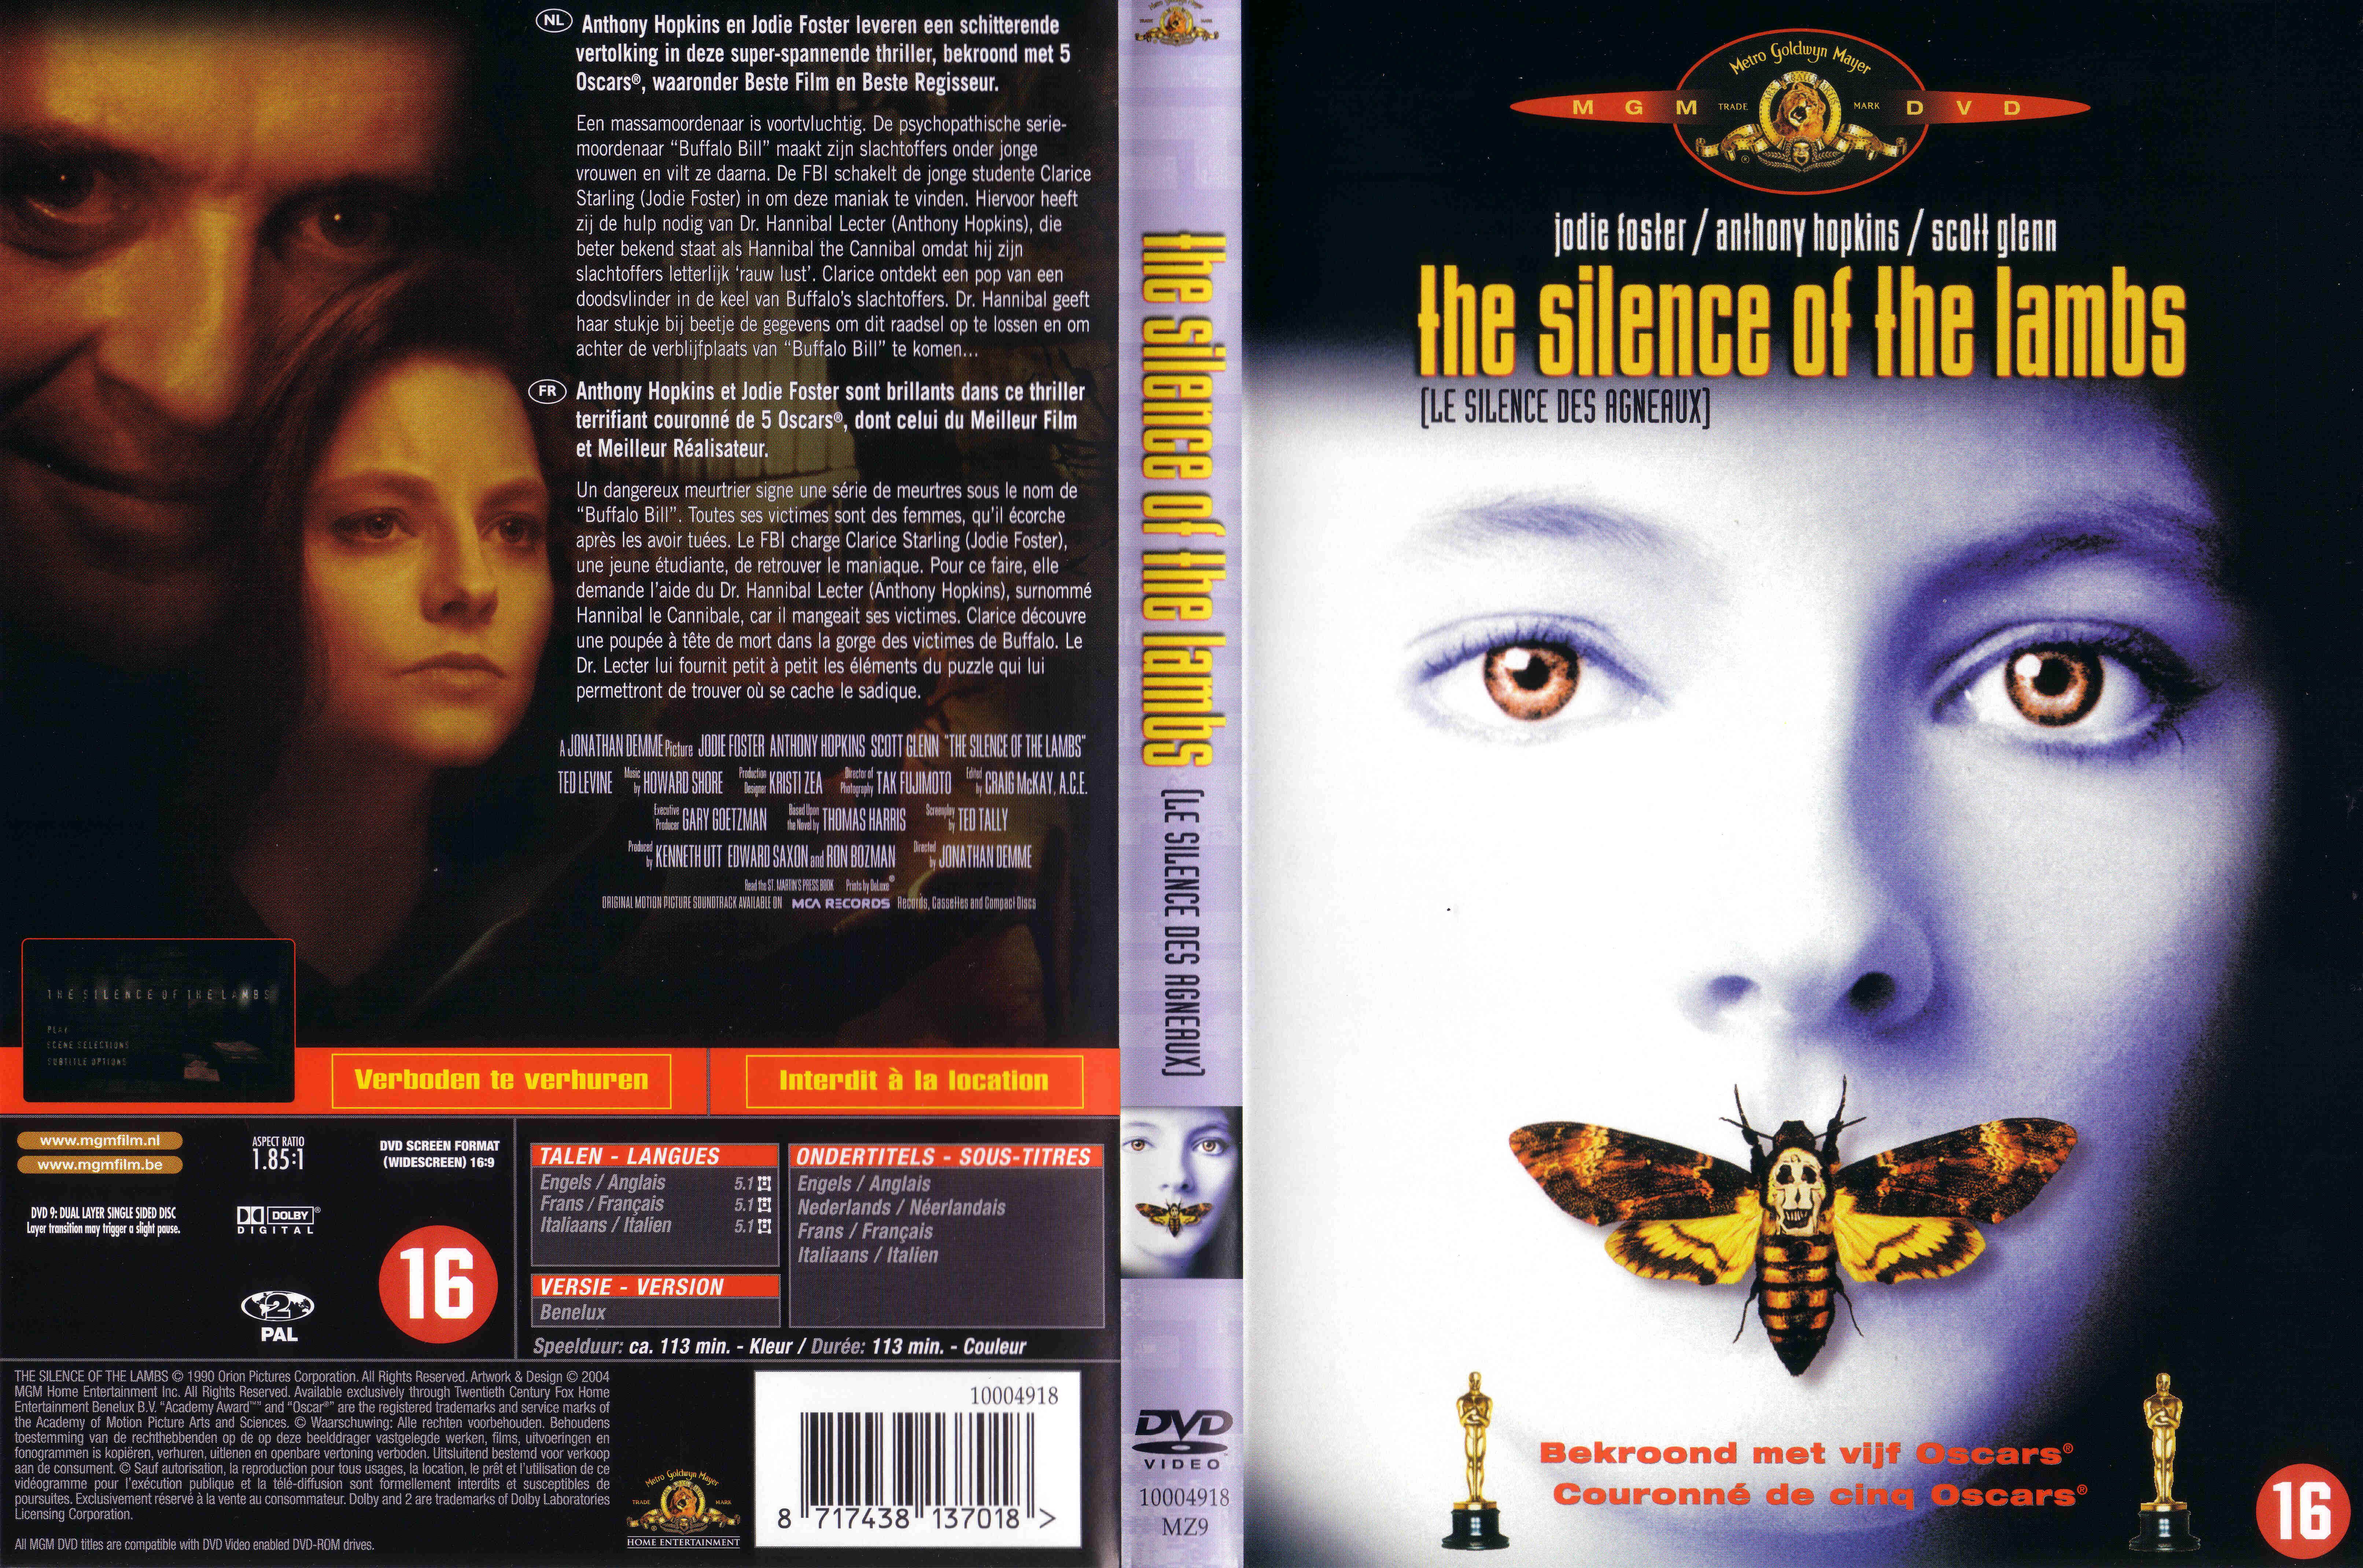 an overview of the movie the silence of the lambs